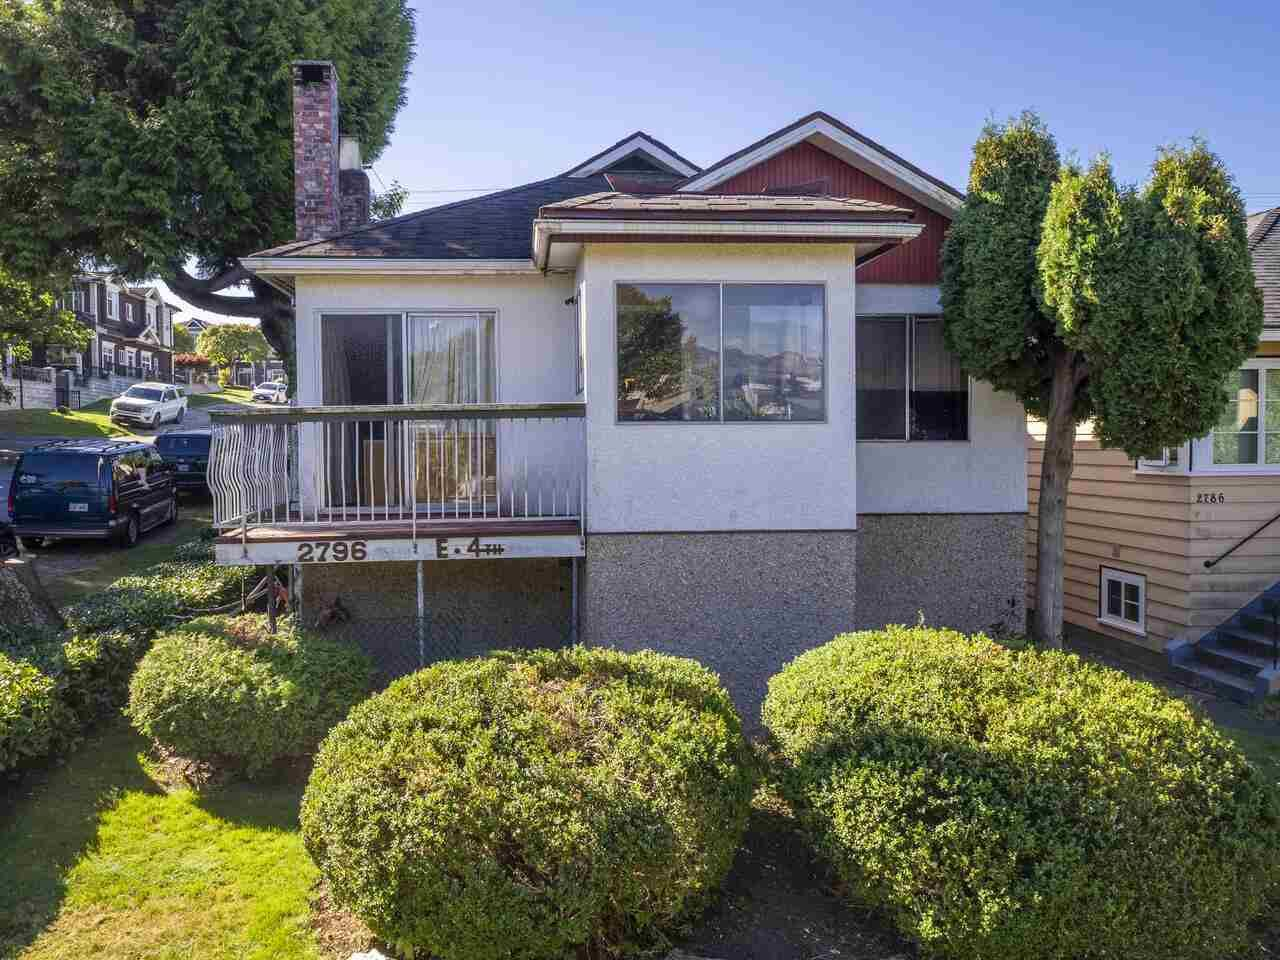 """Main Photo: 2796 E 4TH Avenue in Vancouver: Renfrew VE House for sale in """"Renfrew Heights"""" (Vancouver East)  : MLS®# R2496647"""